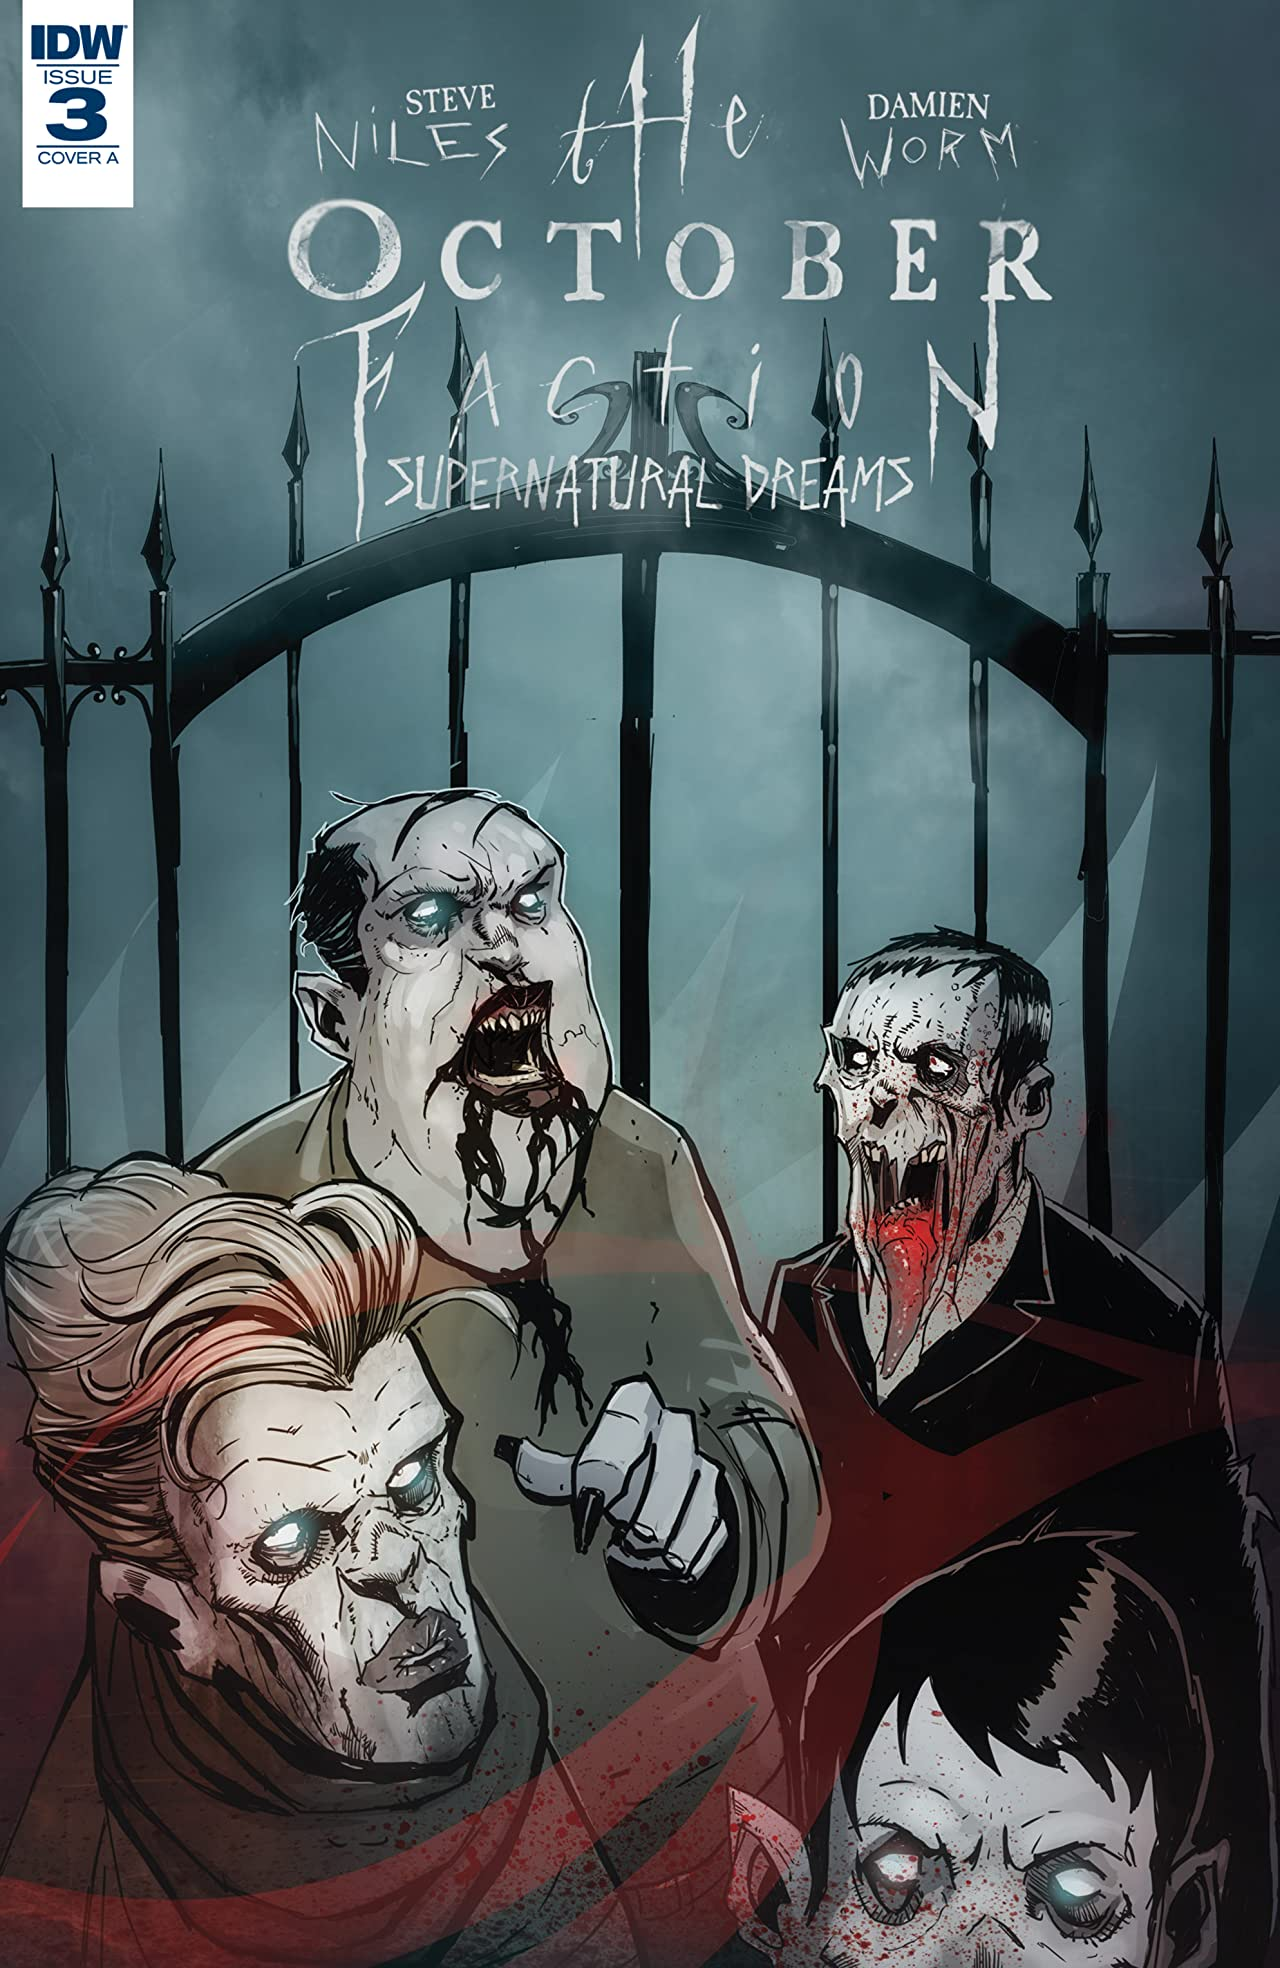 The October Faction: Supernatural Dreams #3